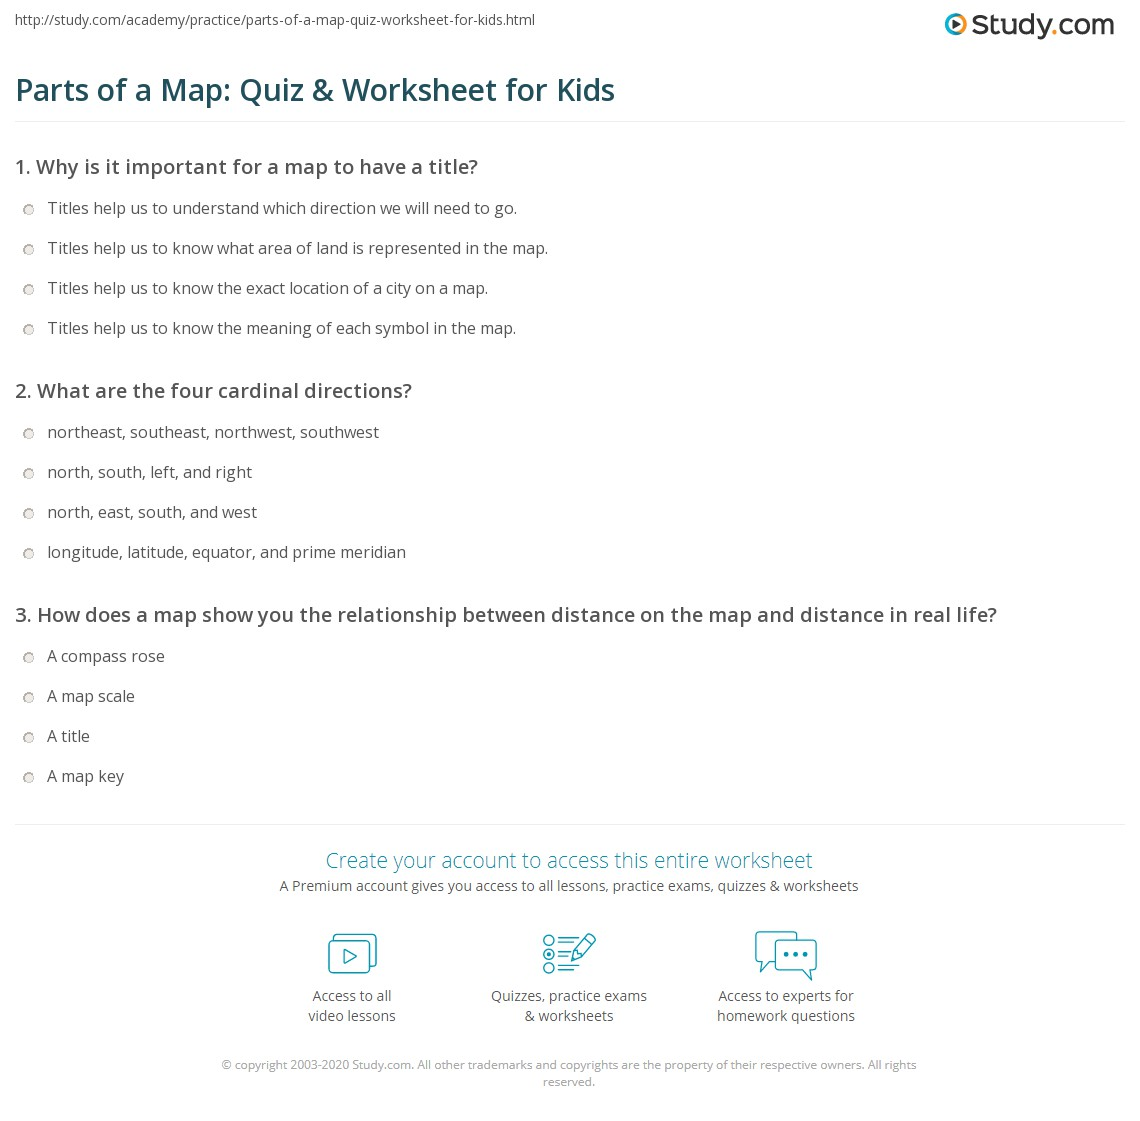 Worksheets Parts Of A Map Worksheet parts of a map quiz worksheet for kids study com print lesson worksheet